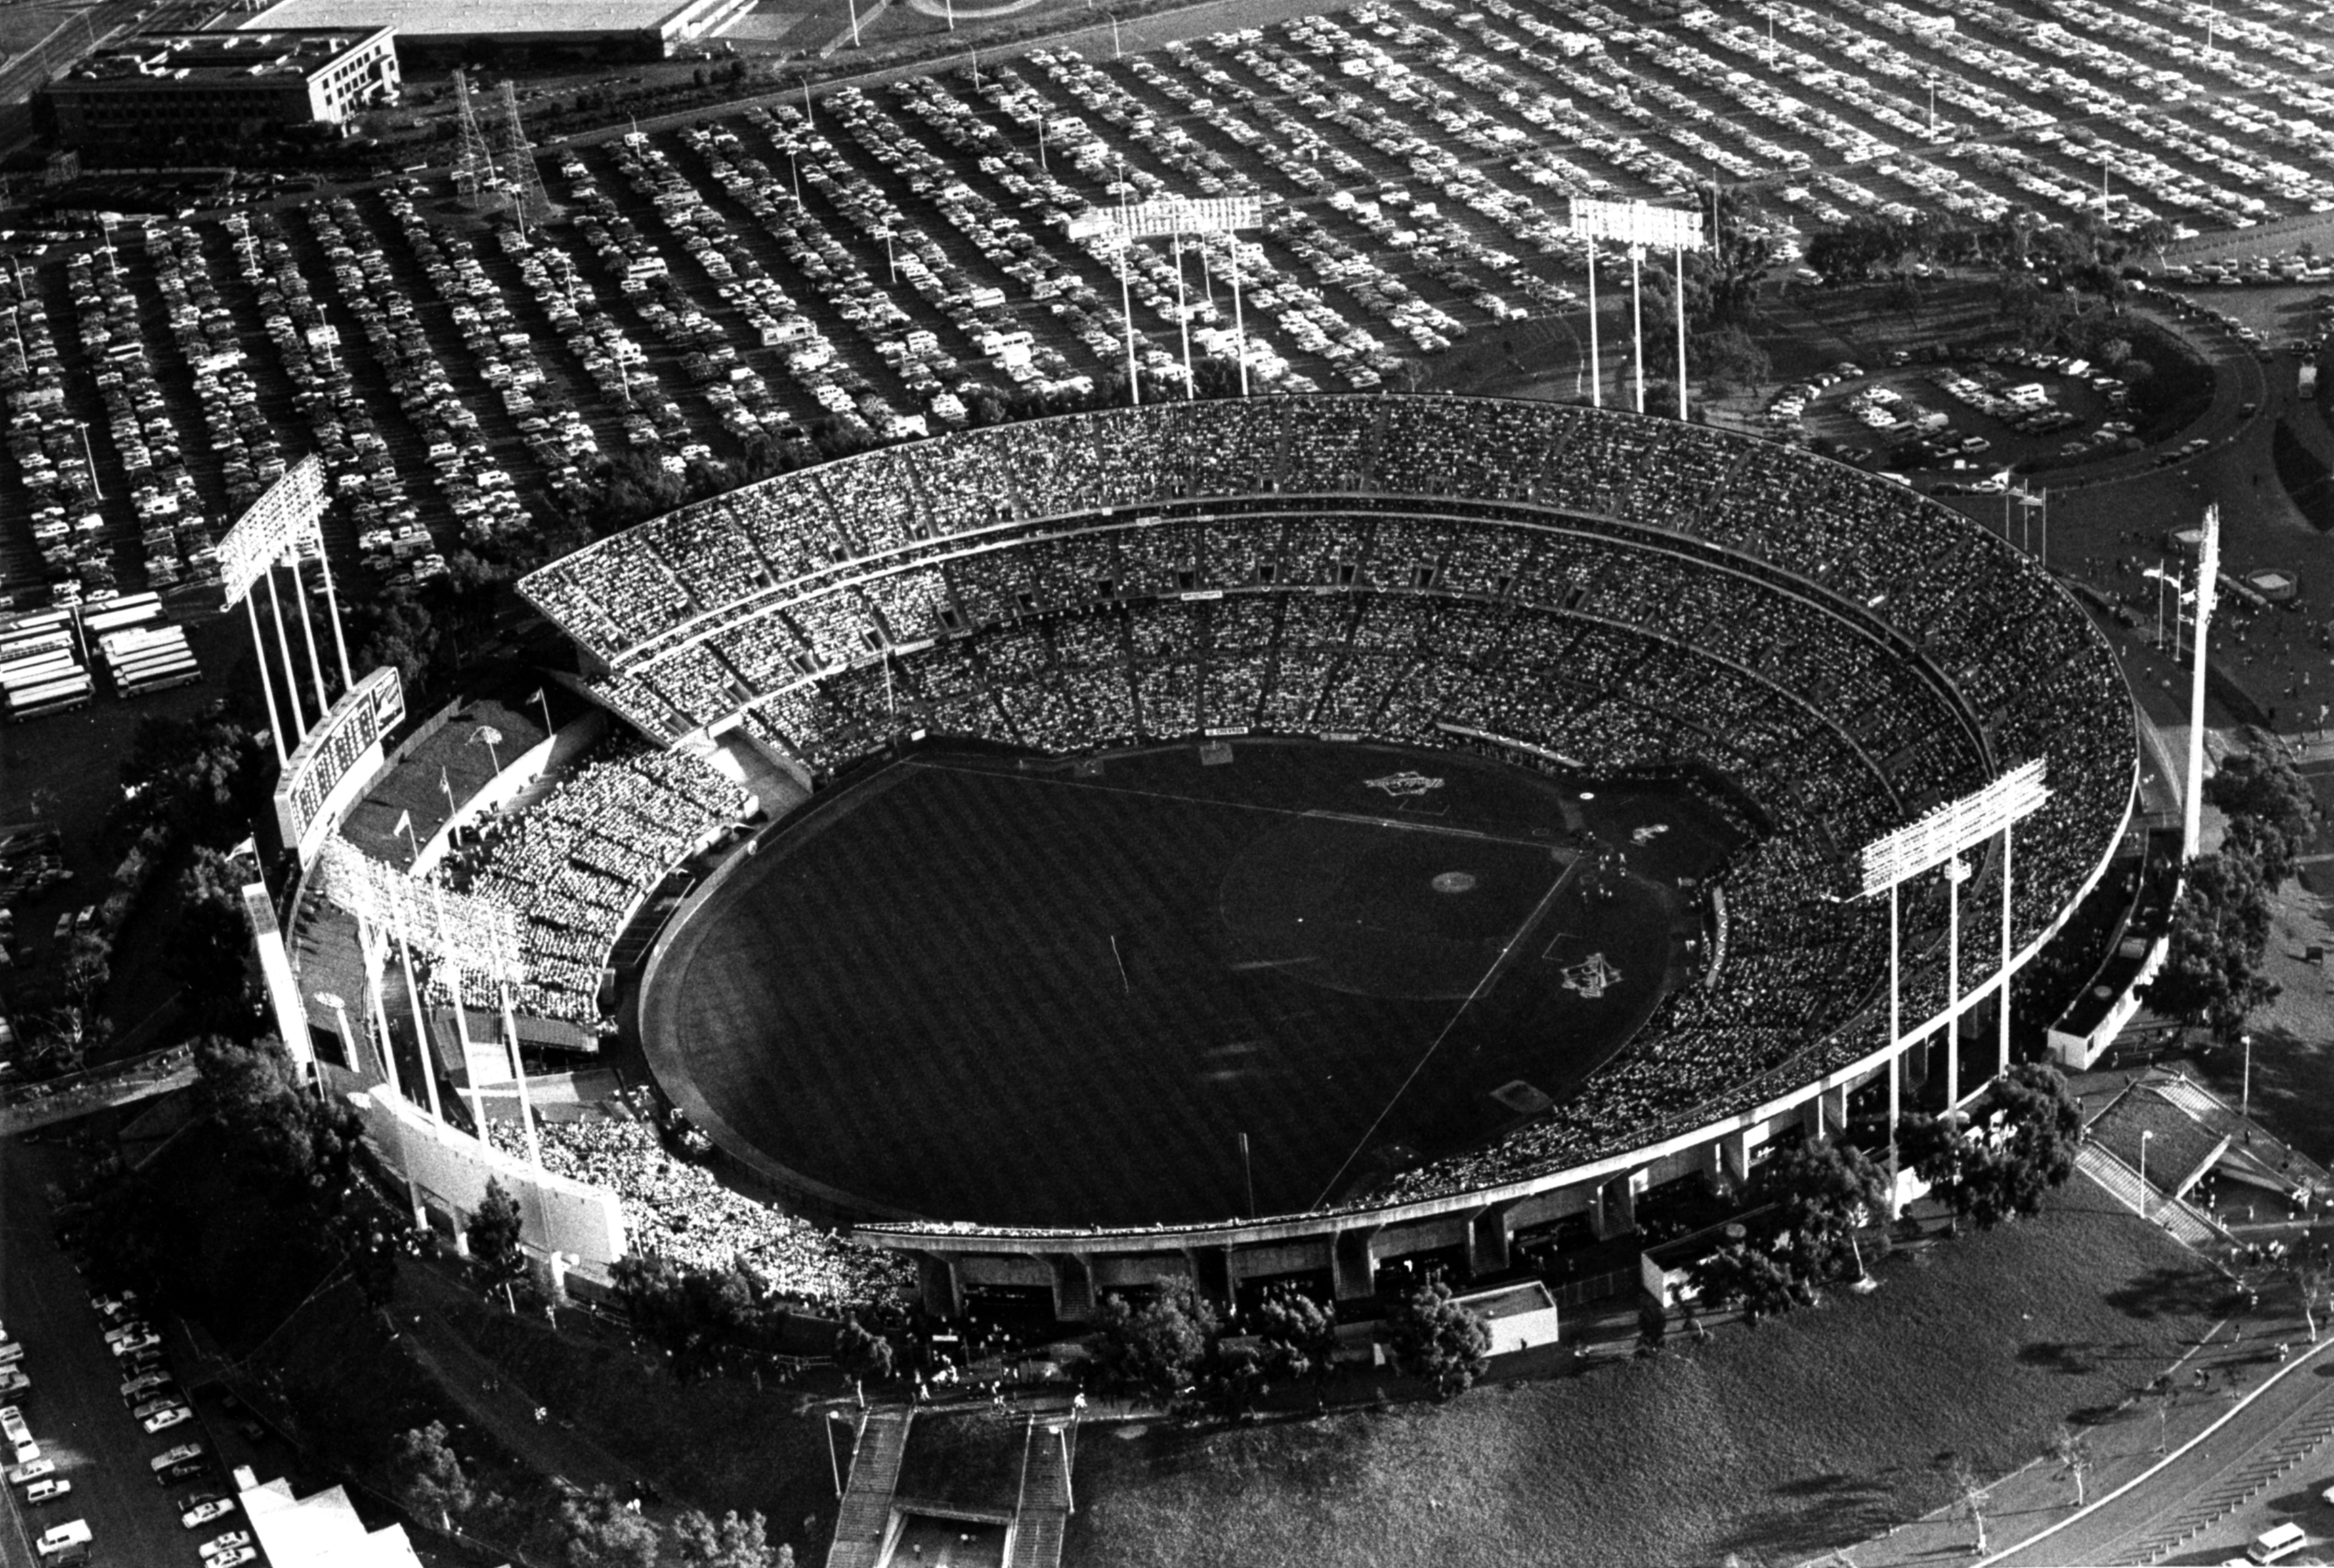 A black and white image of the Oakland Coliseum from above, filled with people. The parking lot in the upper half of the image shows a parking lot filled with cars.